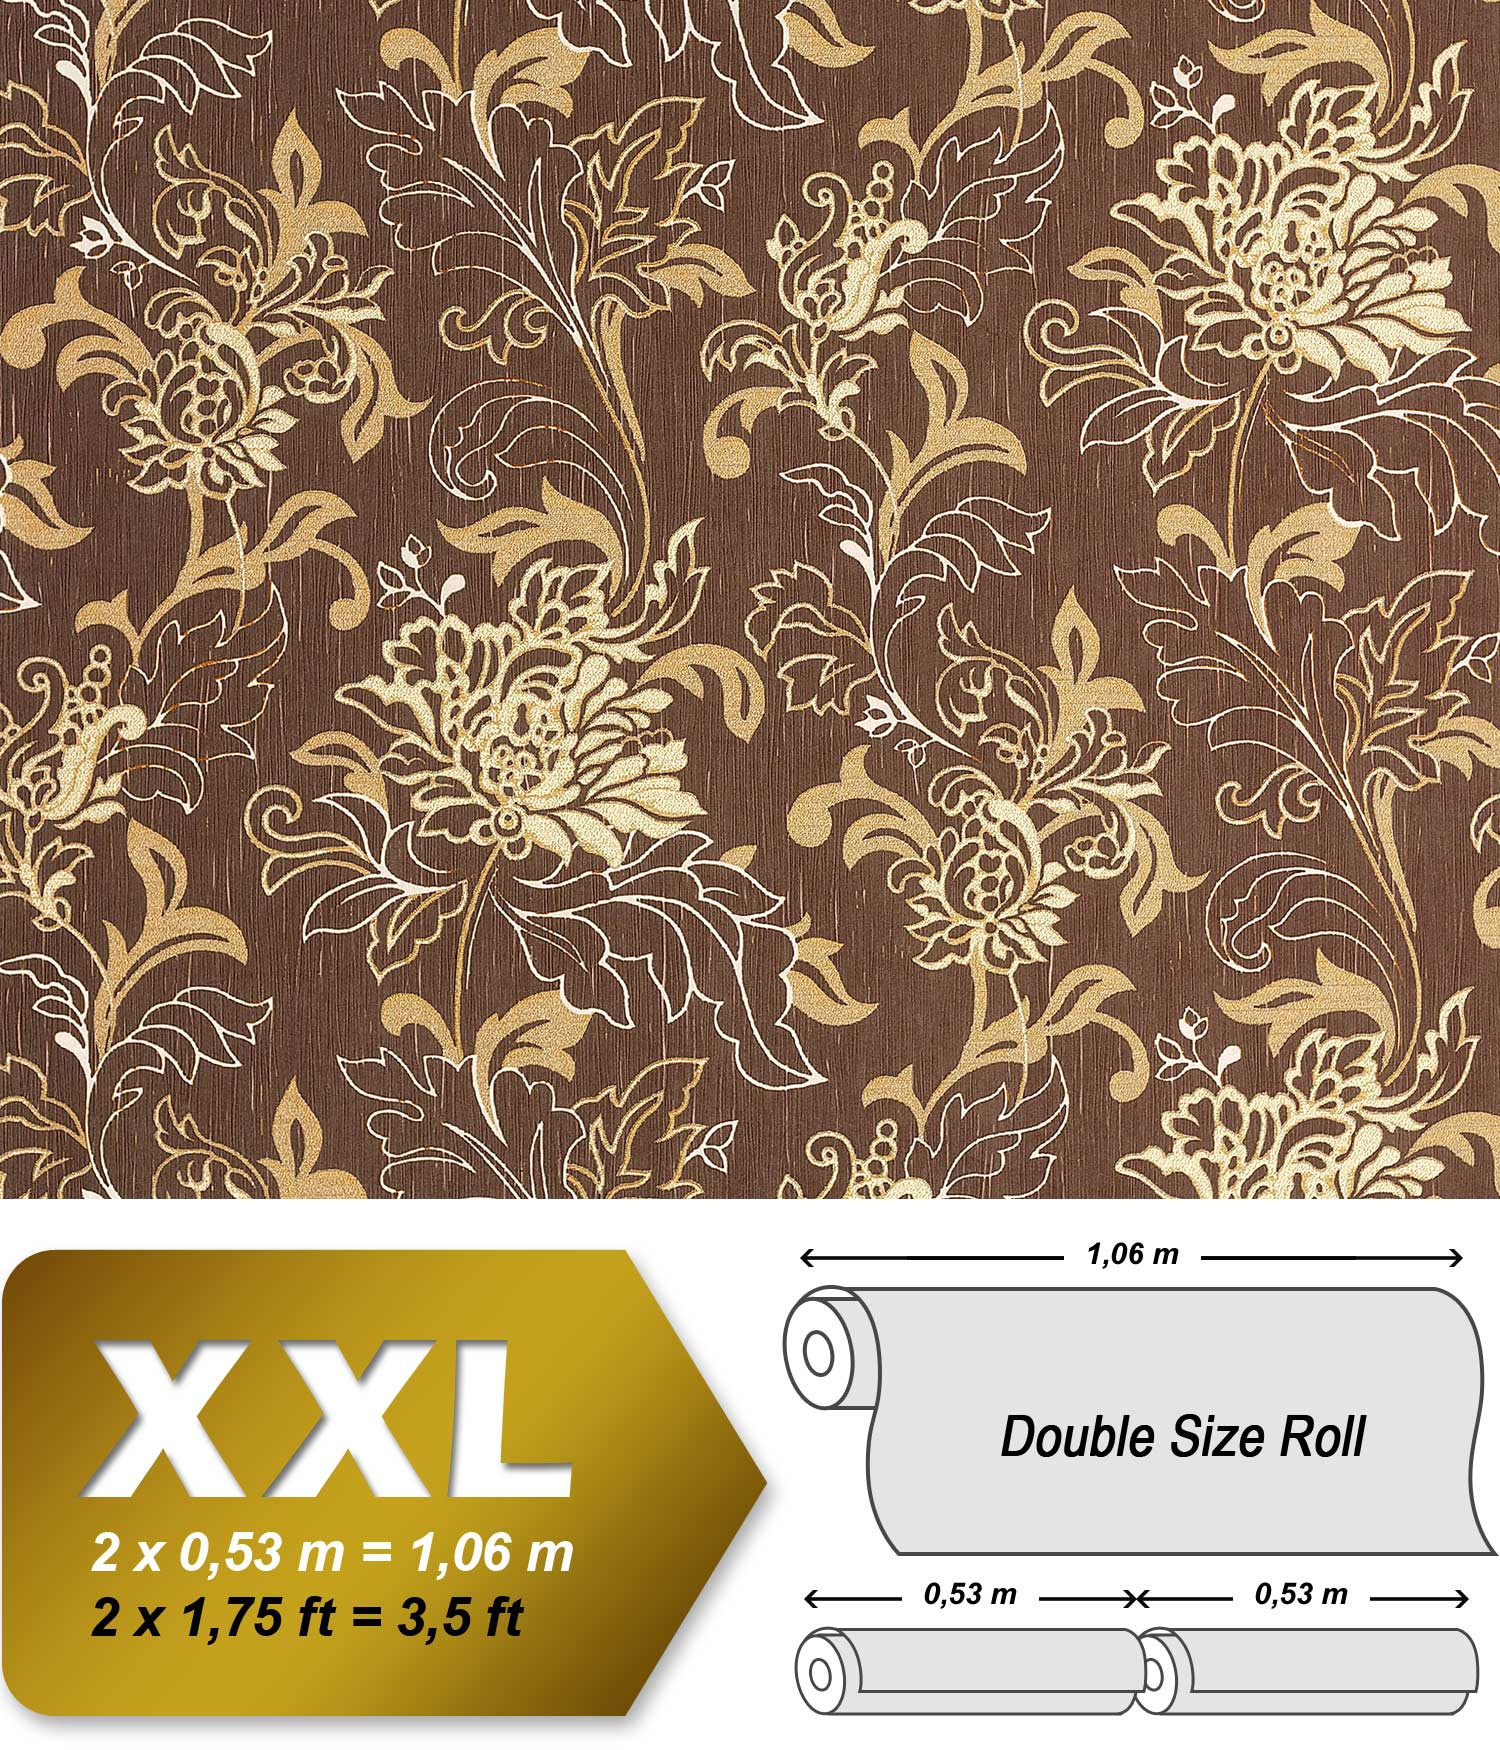 Floral Textured XXL Wallpaper Wall EDEM 604 94 Non Woven Wallcovering Flowers Brown Cream Beige Gold